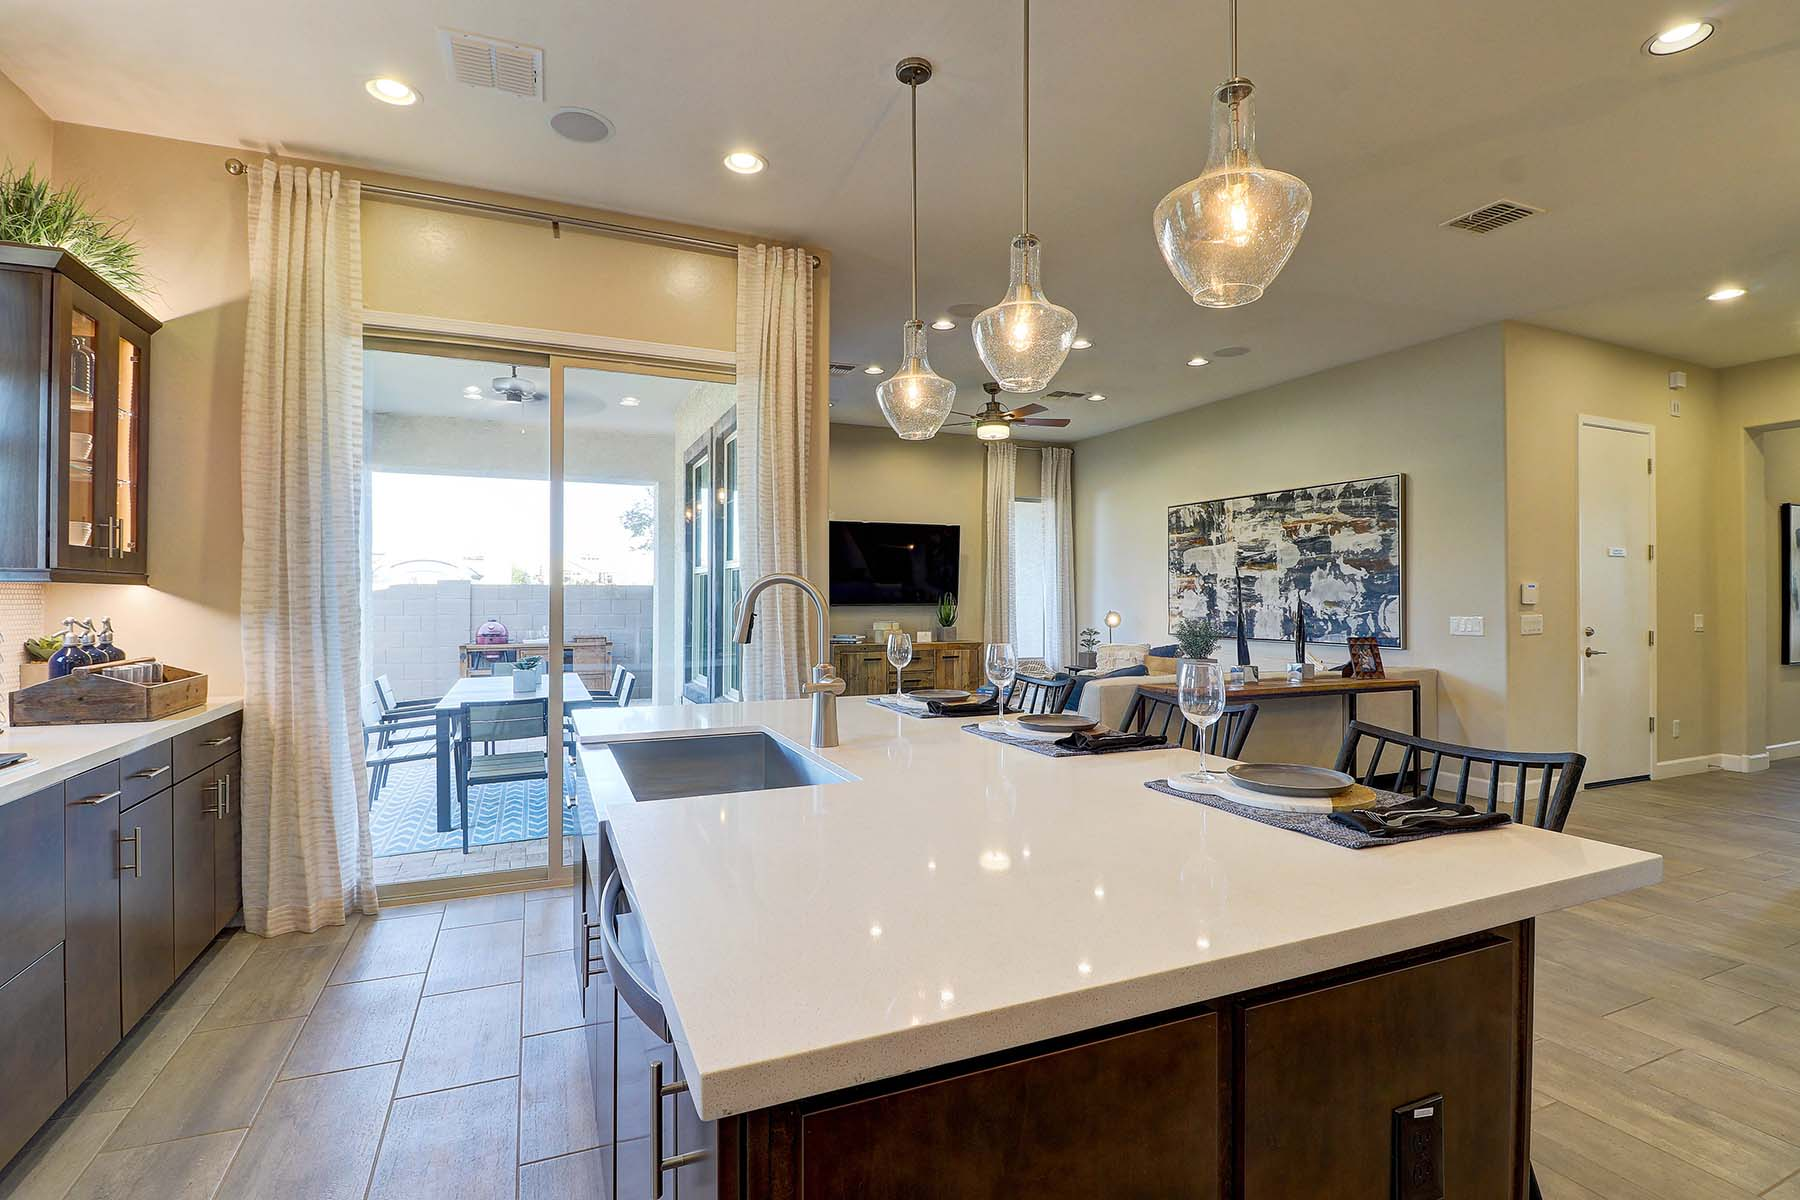 Romero Plan  at Retreats at Haven in Chandler Arizona by Mattamy Homes